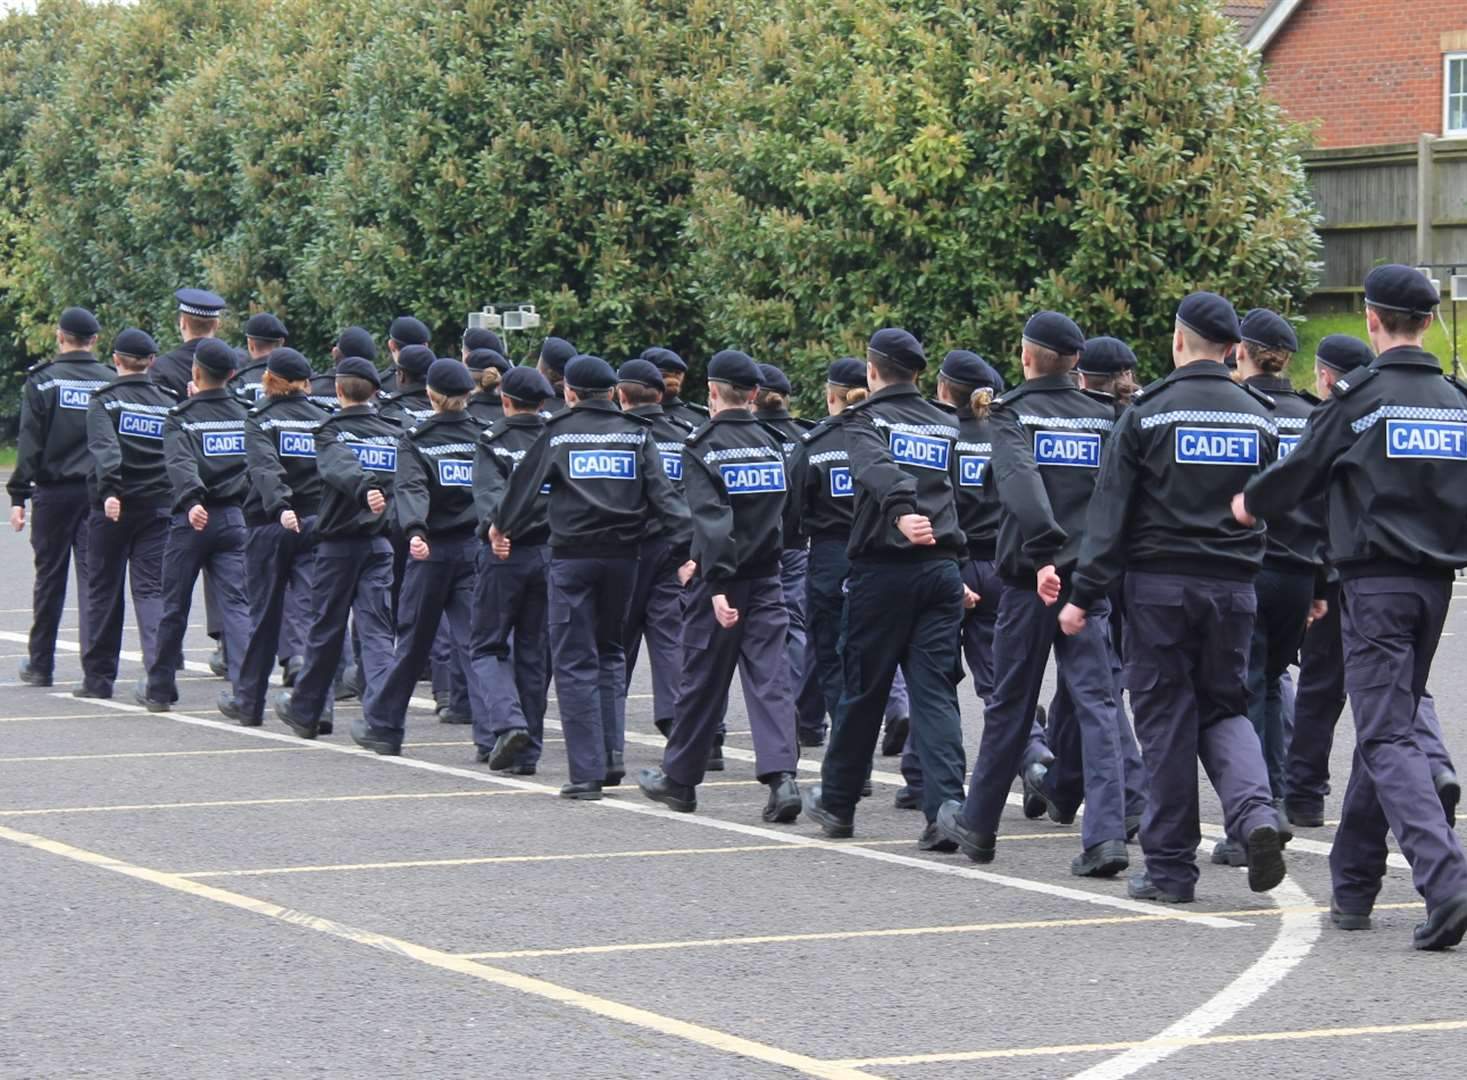 Kent Police Cadets from Canterbury, Medway and Tonbridge